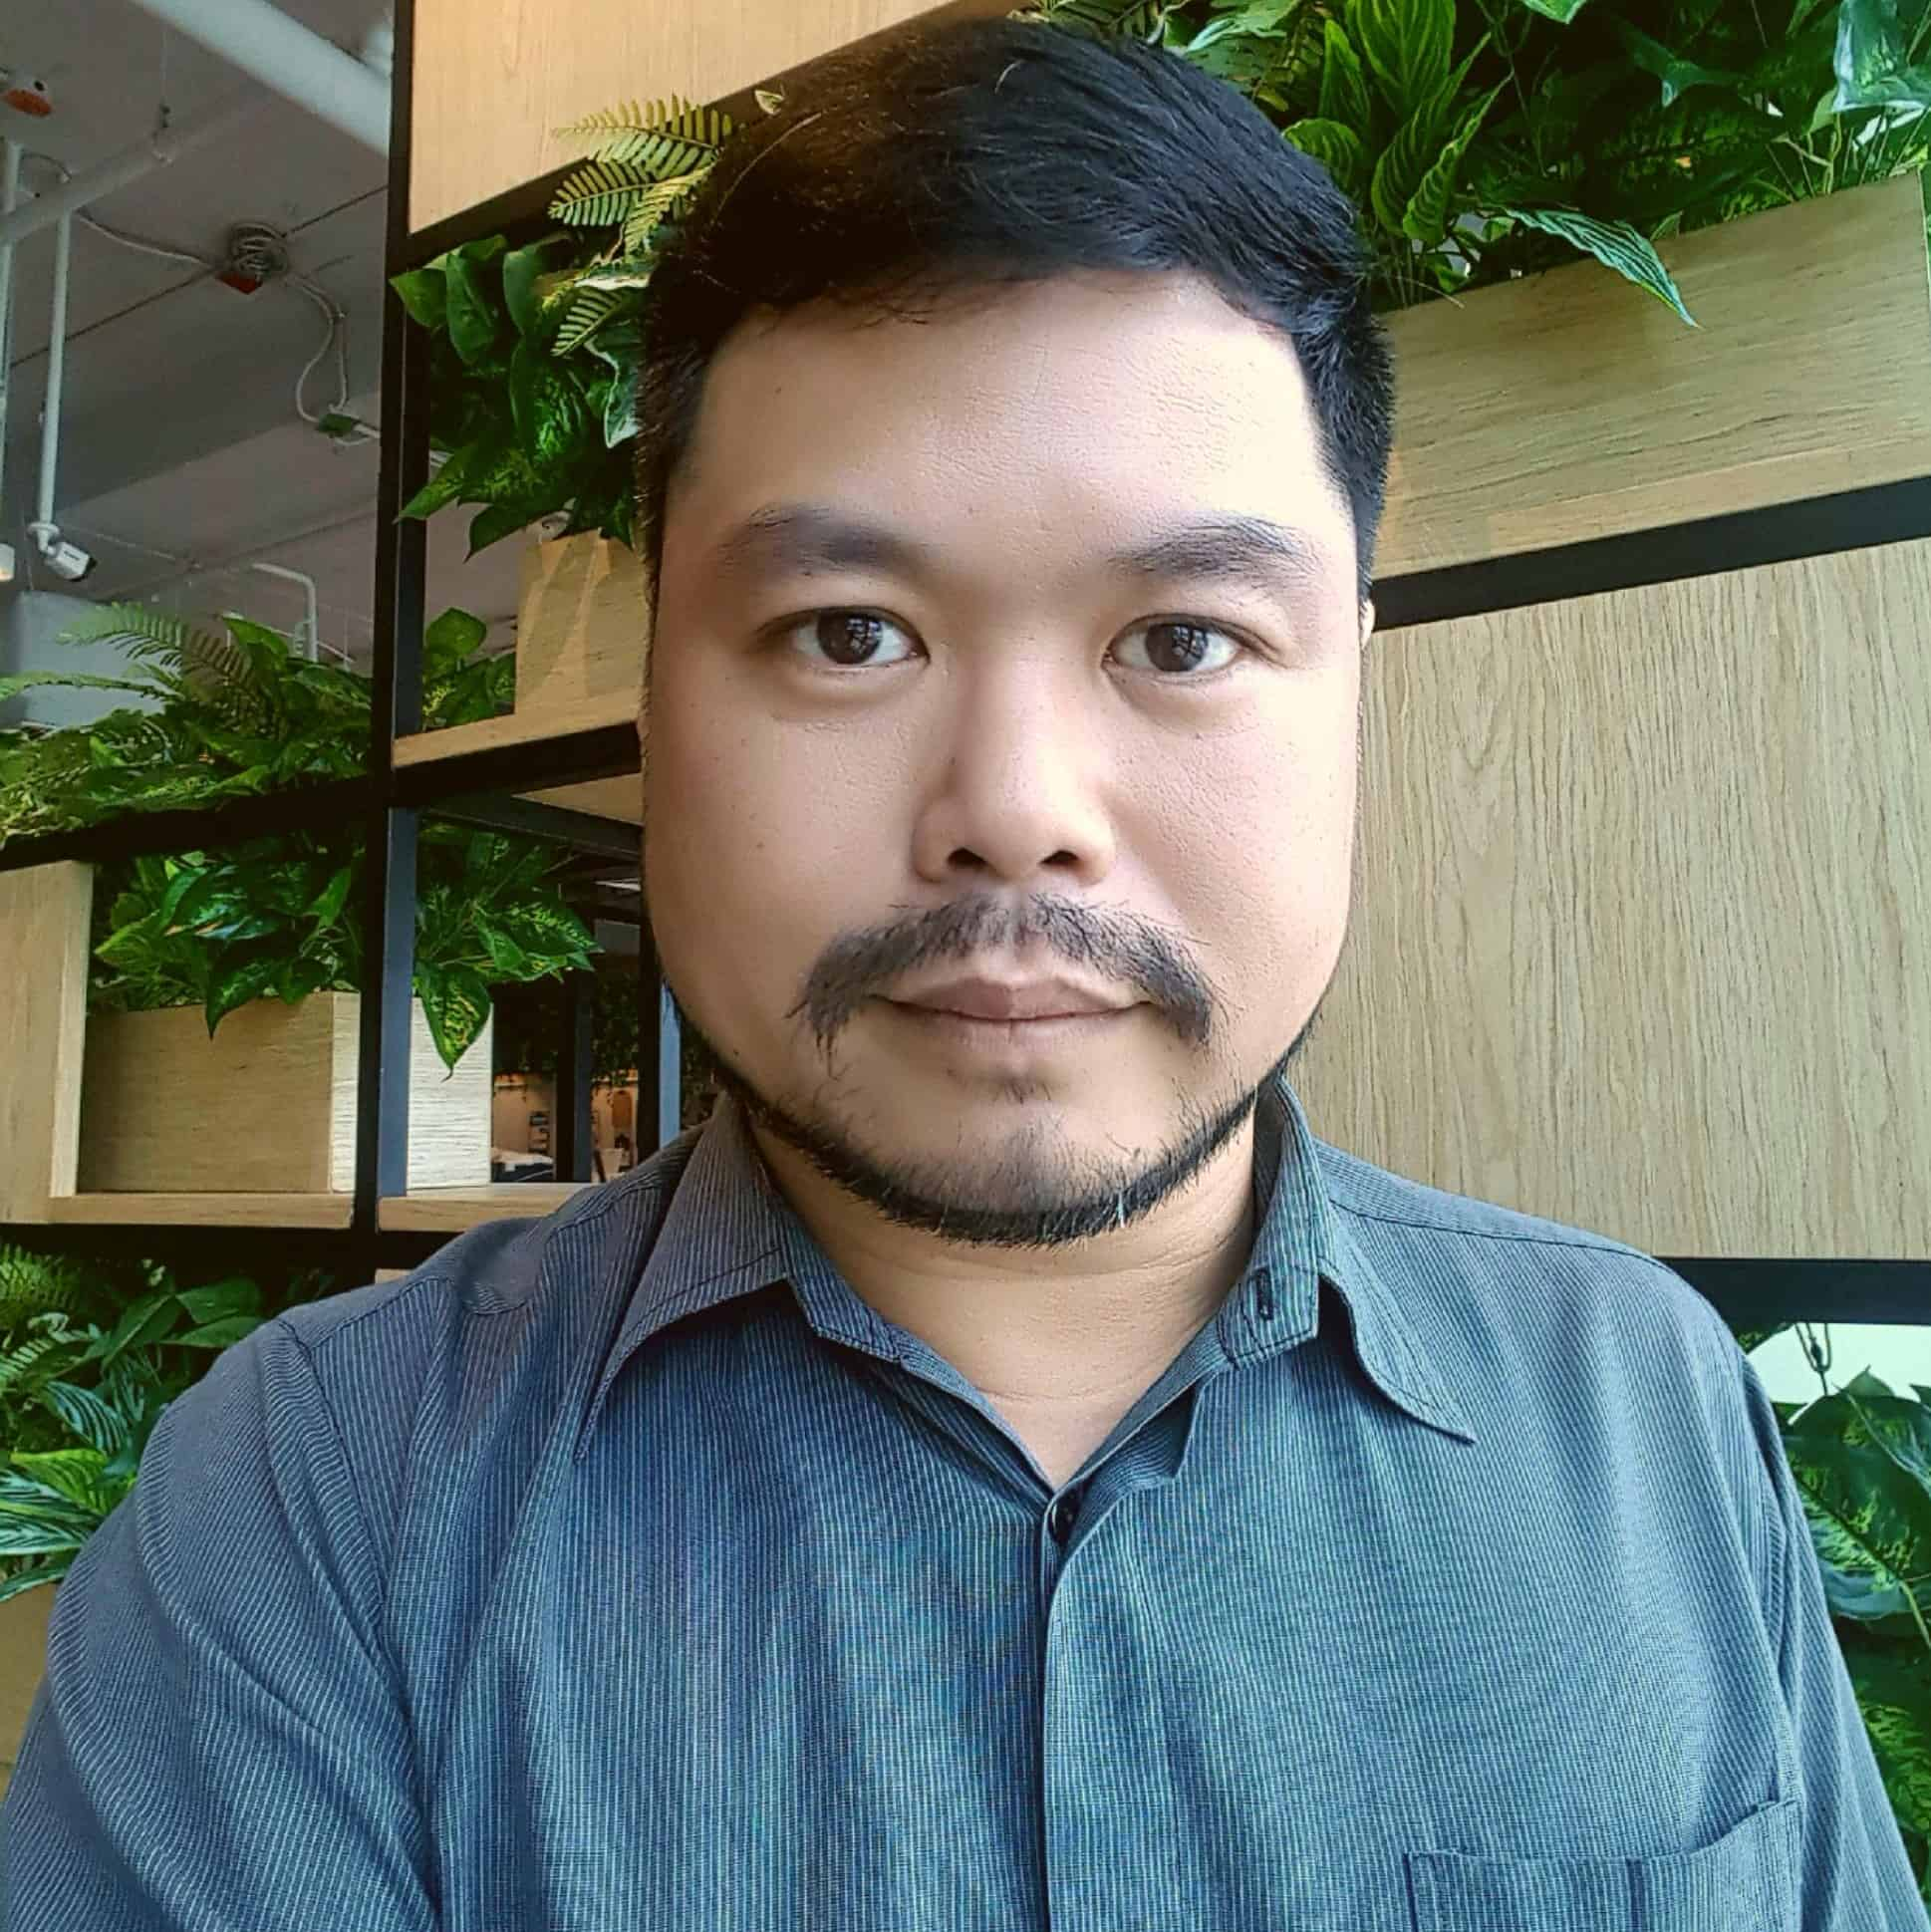 Khun Nitiwat - Events and Production Manager at B-Concept Media Entertainment Group and BCD Meetings & Events Thailand.